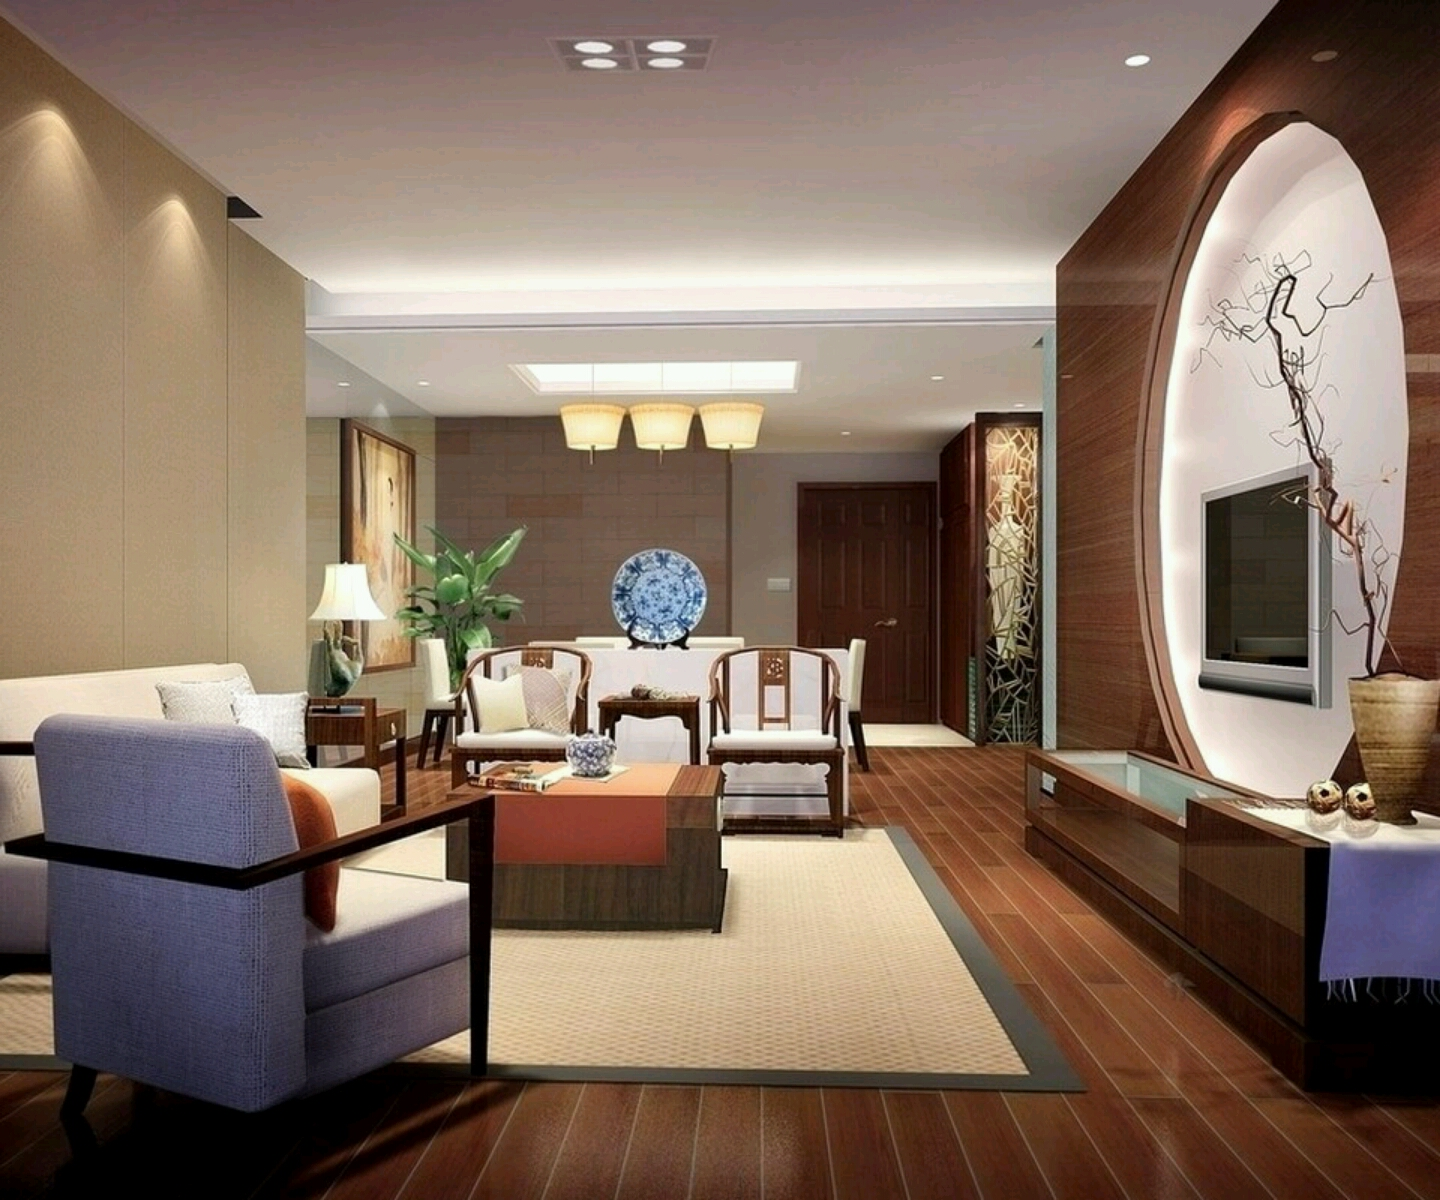 Luxury homes interior decoration living room designs ideas for Living room decor themes